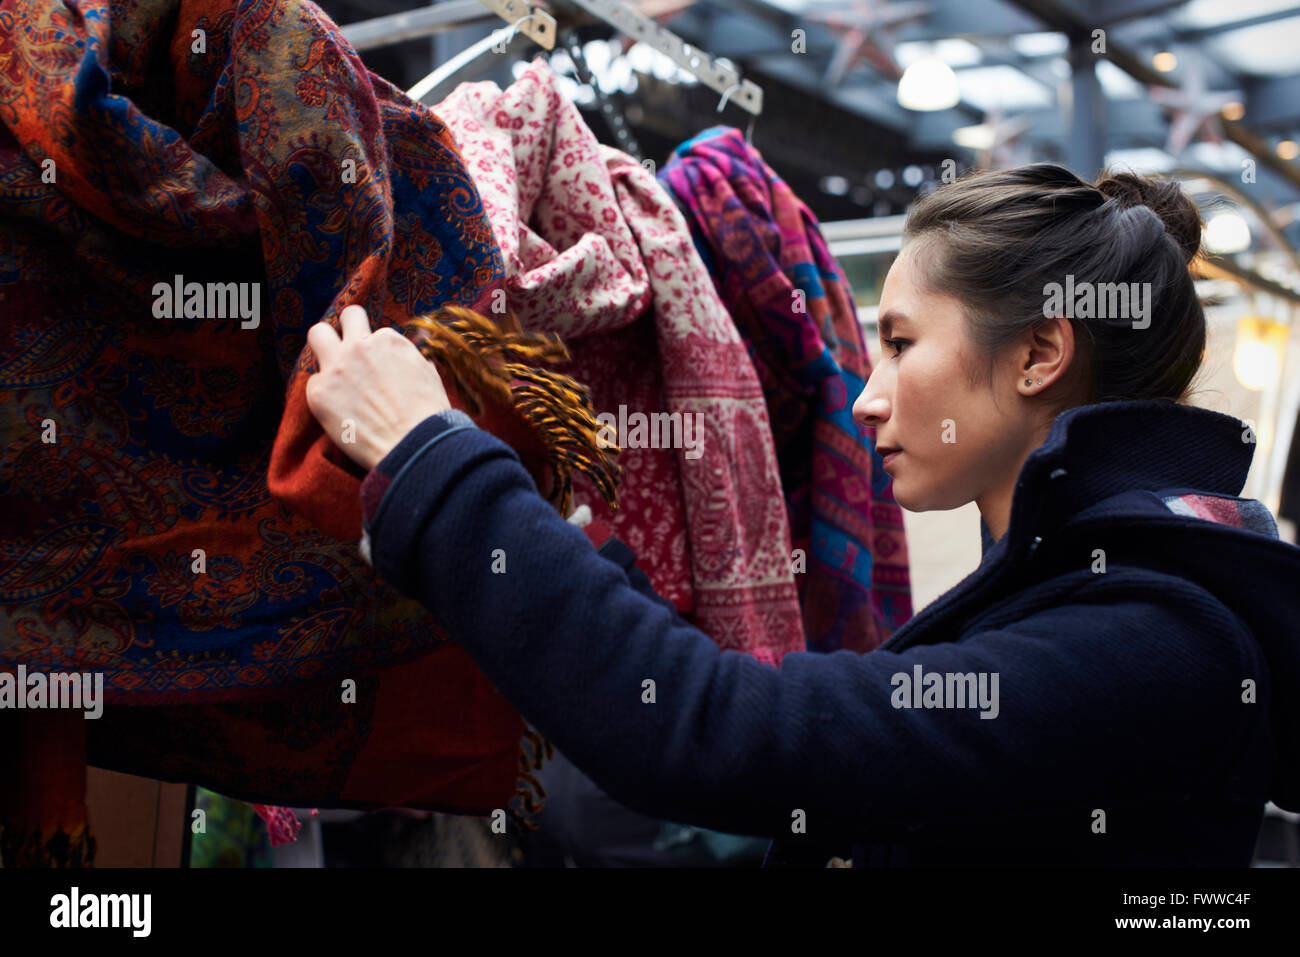 Young Woman Shopping in Marché CouvertBanque D'Images